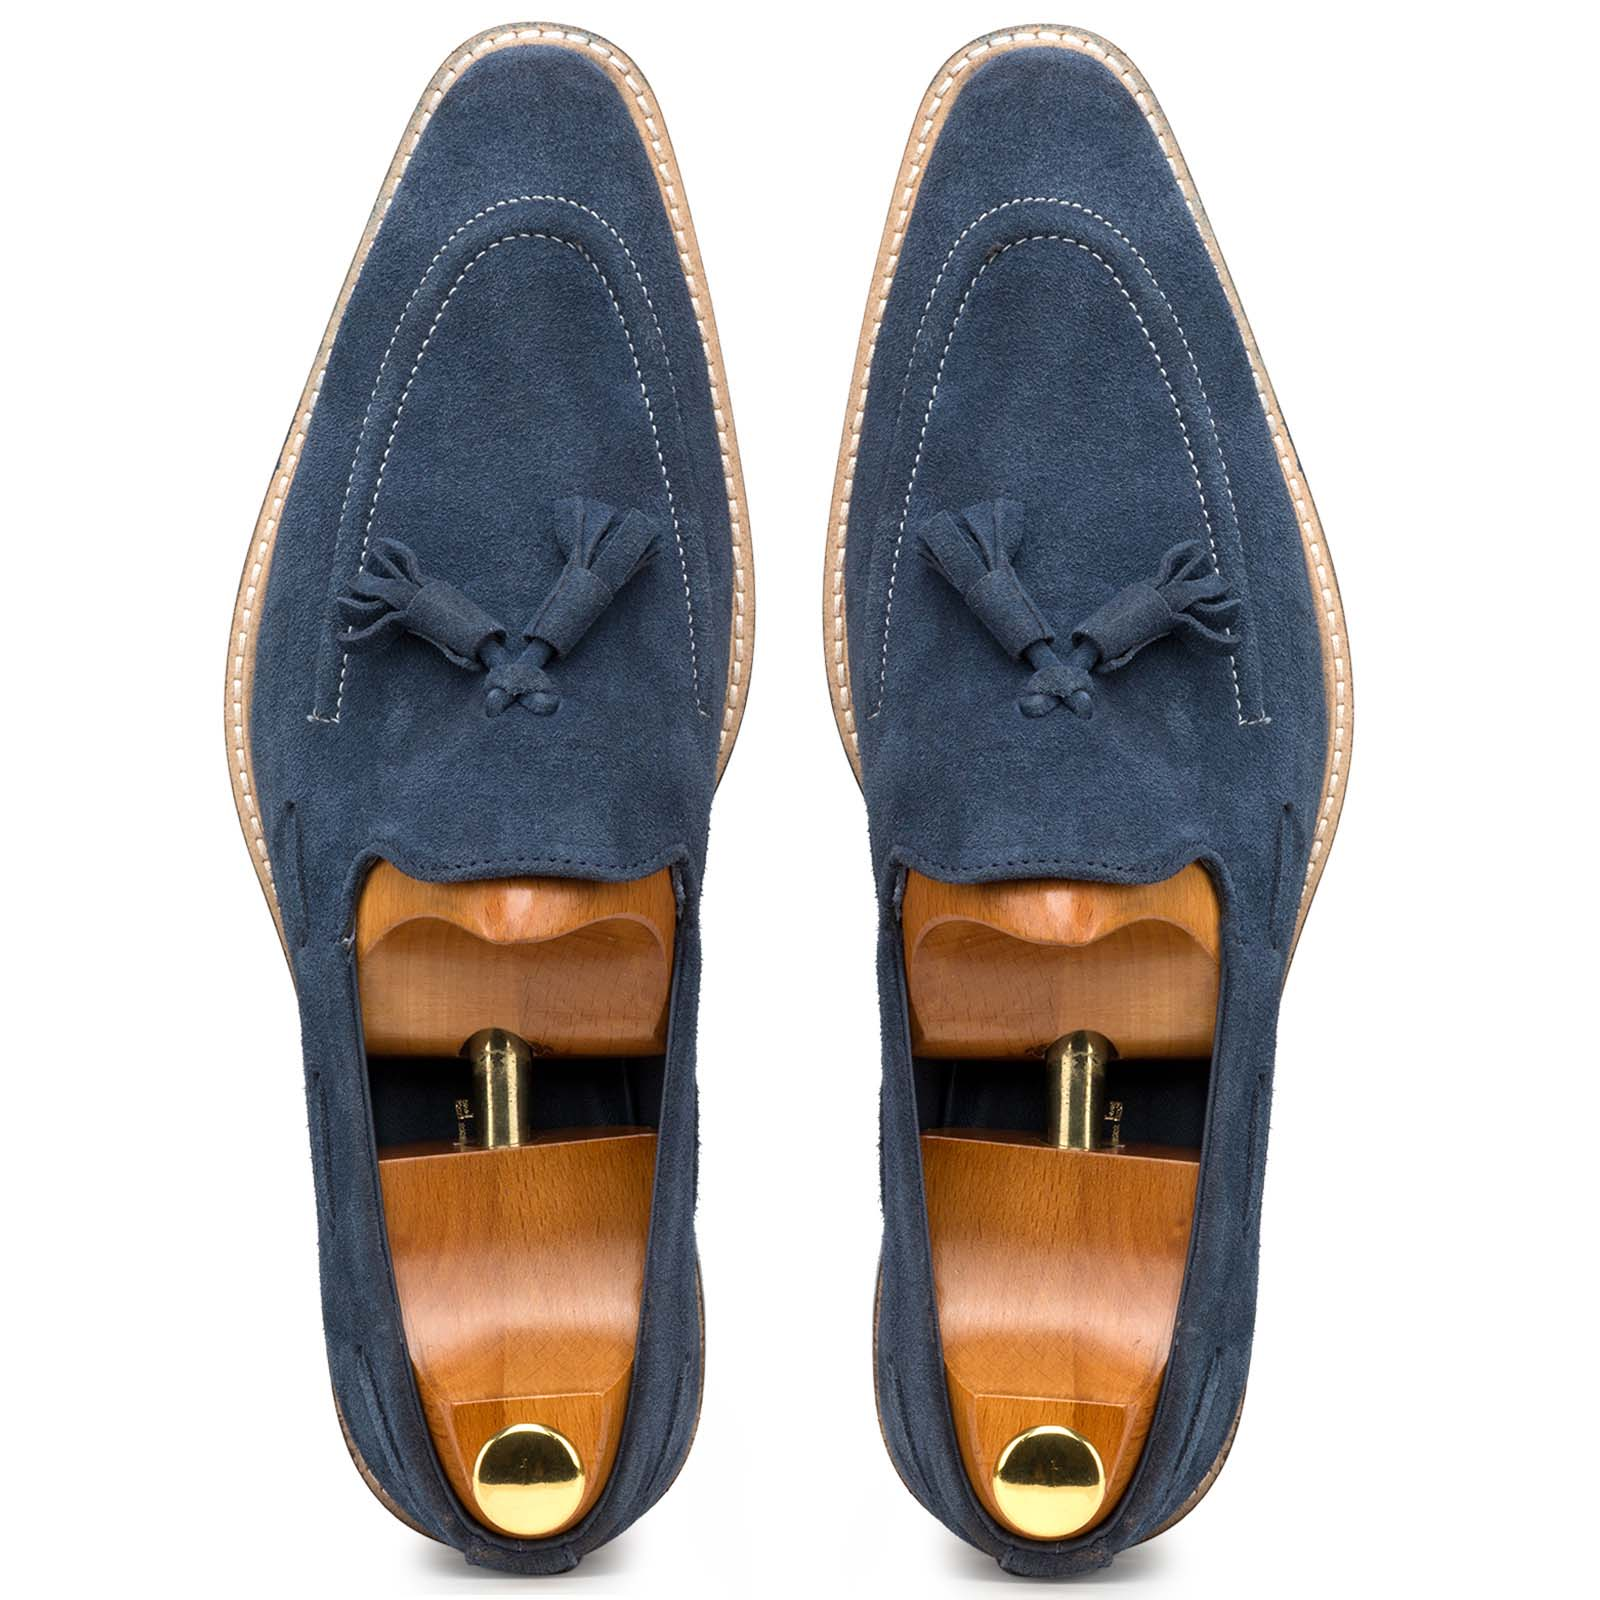 Navy Blue Suede Tassel Loafers